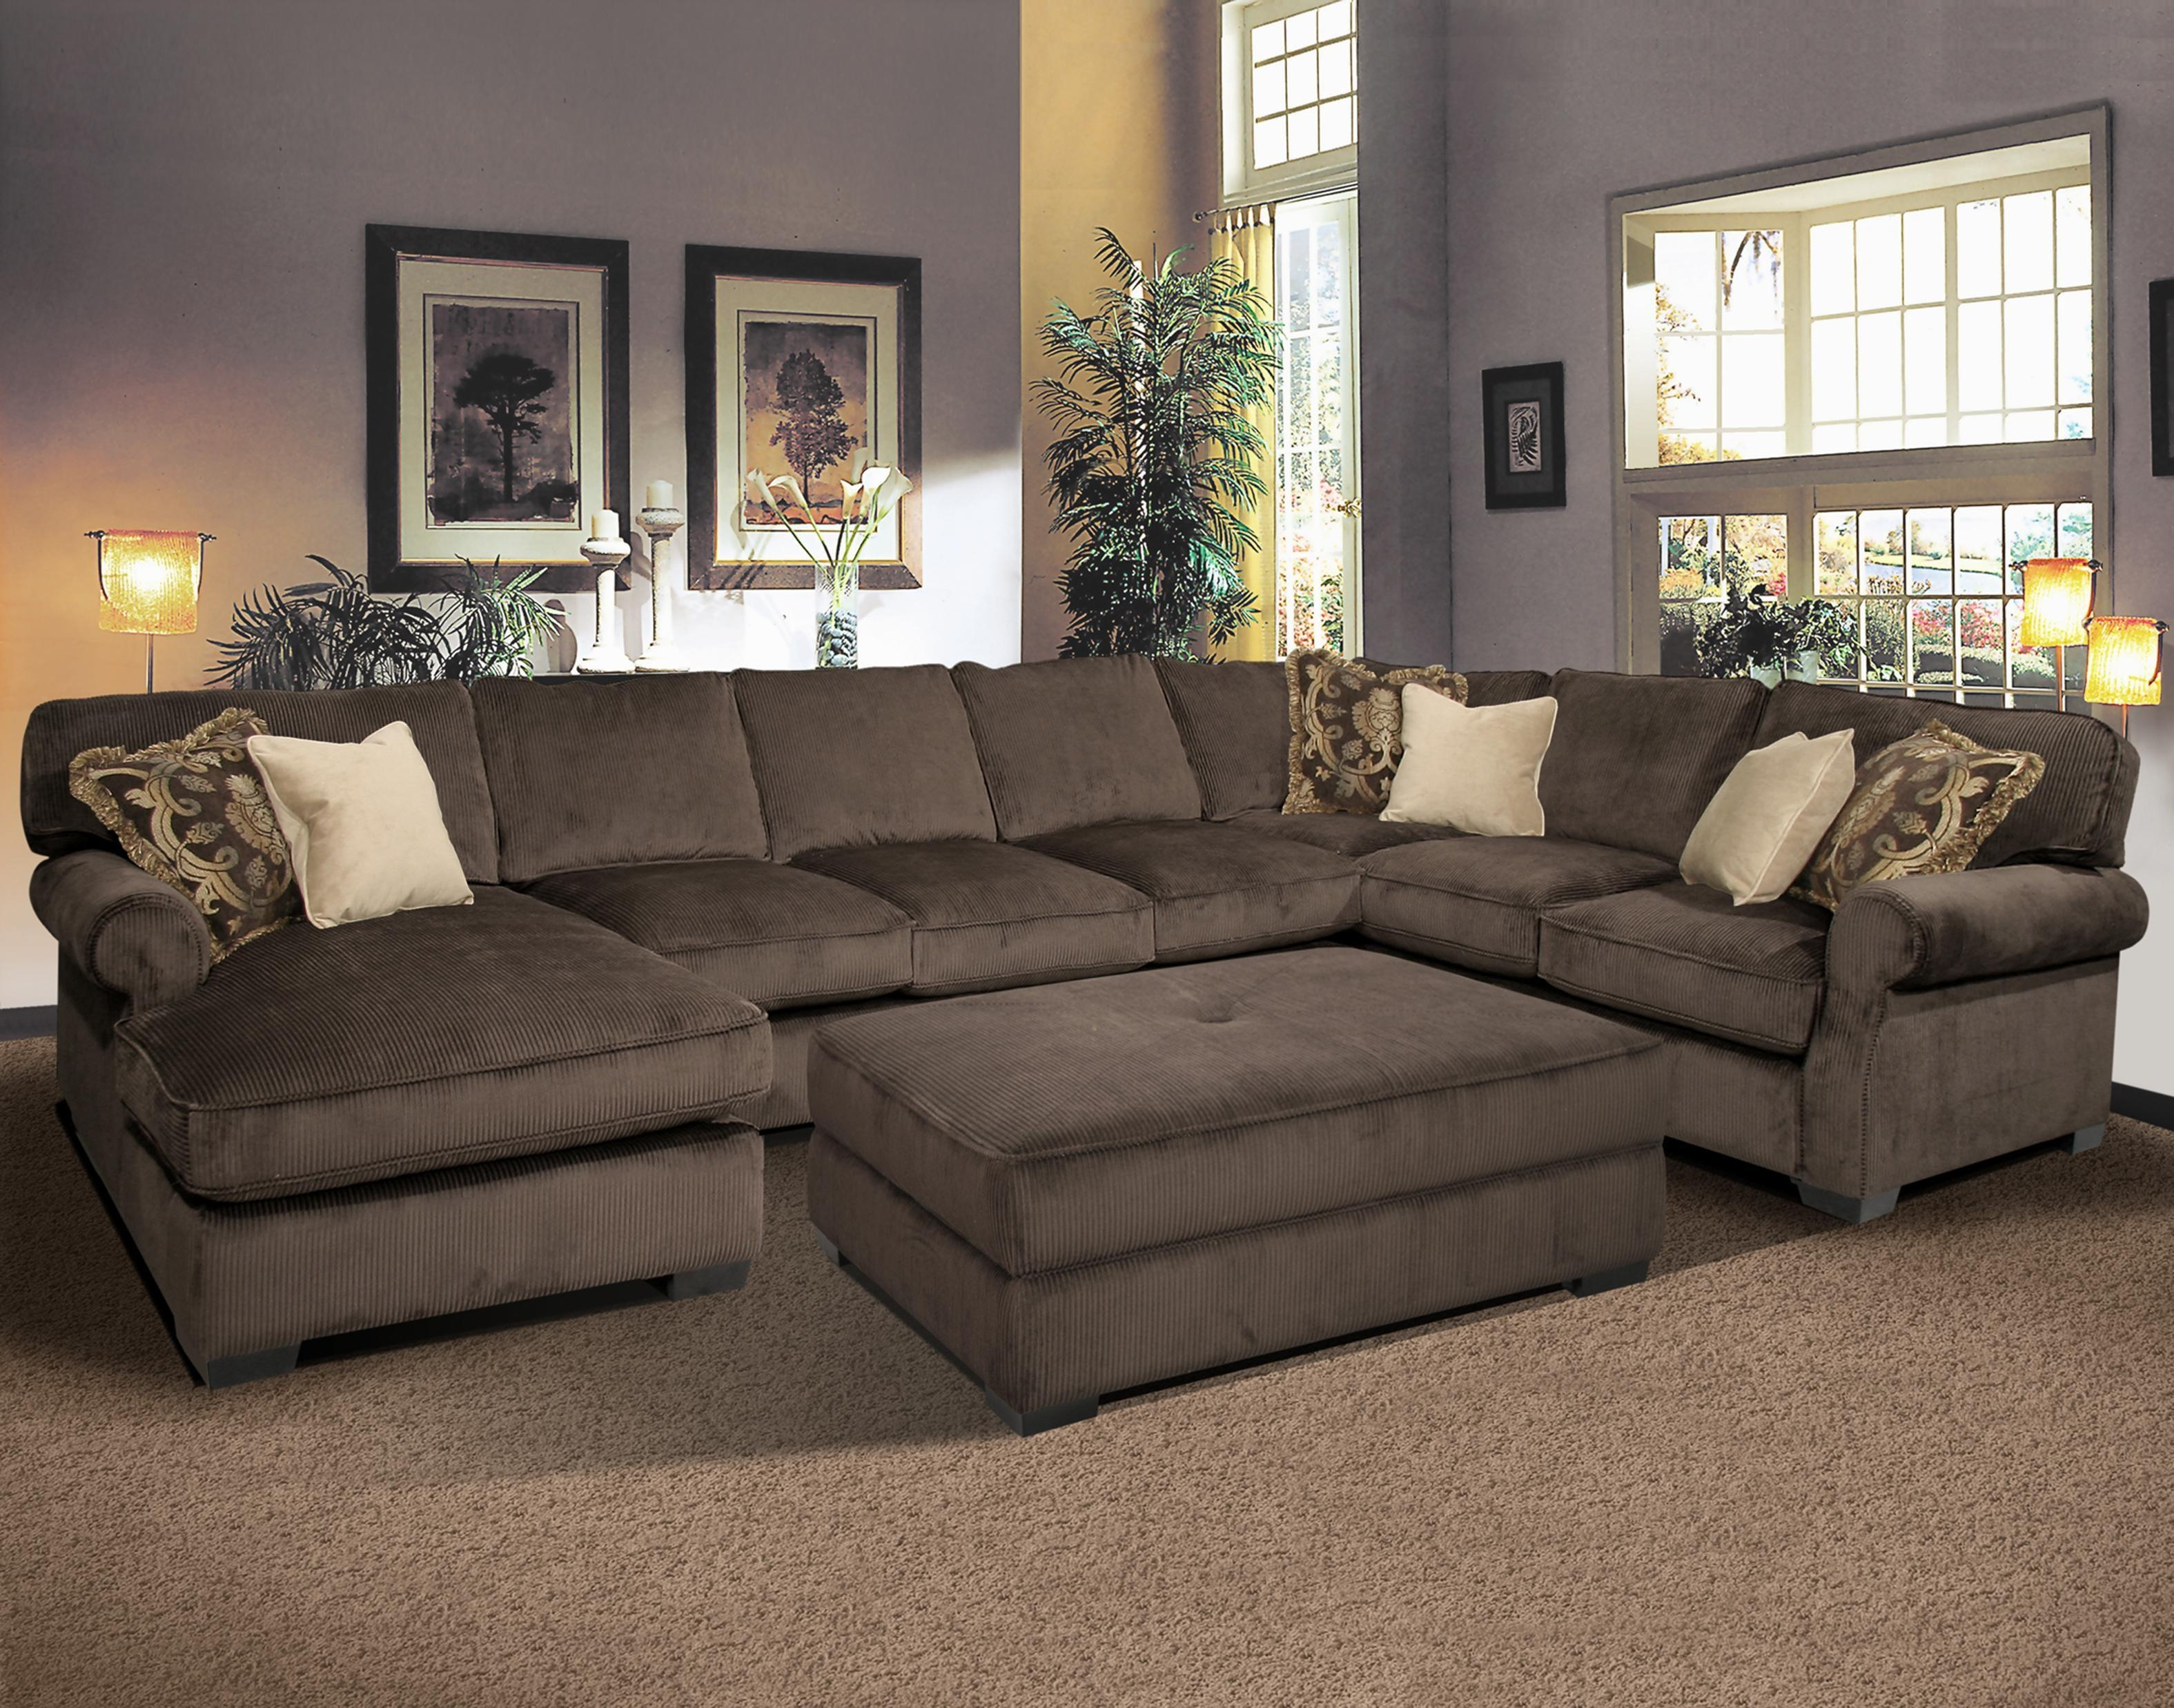 Queen Sofa Bed Sectional With Queen Sofa Sleeper Sectional Microfiber (View 9 of 20)